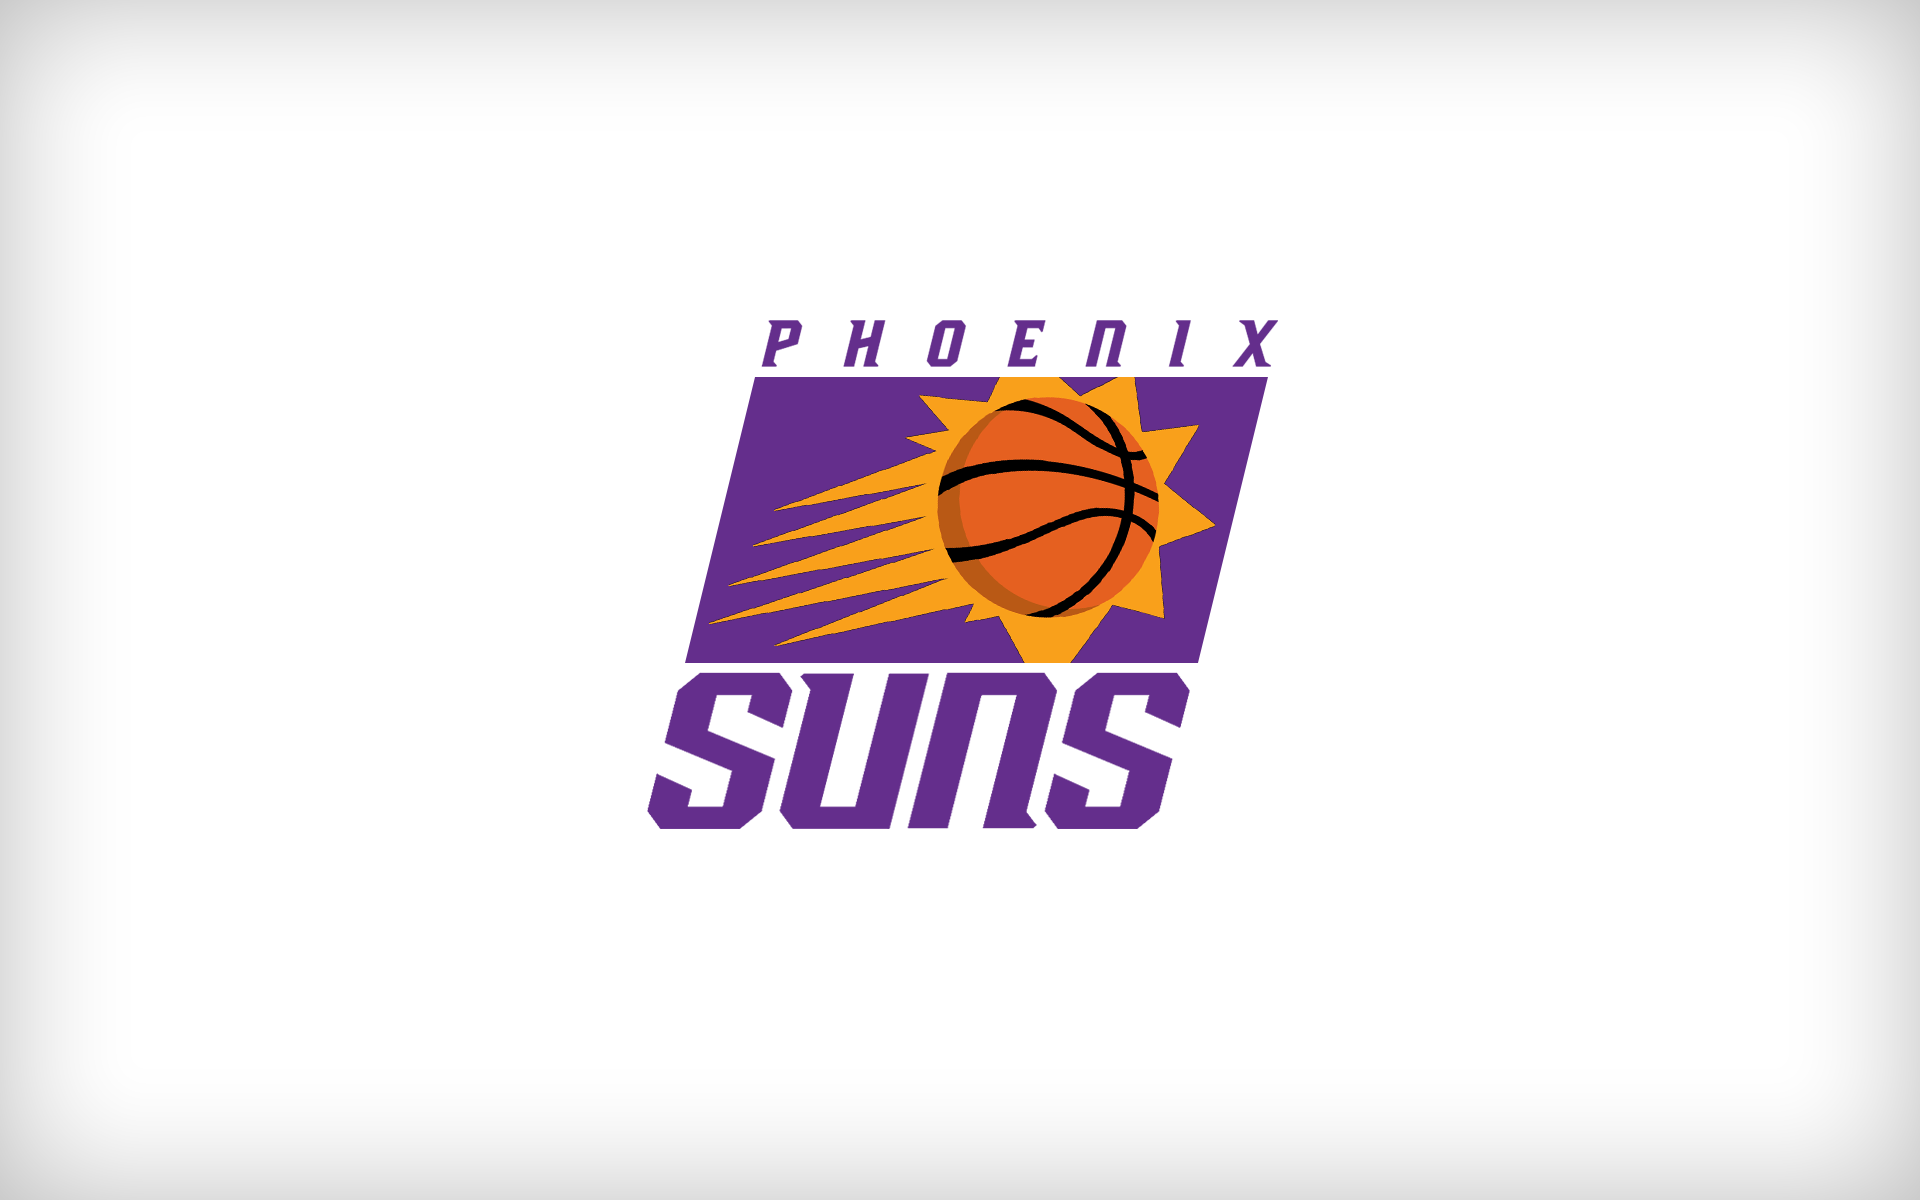 Redesigning Nba Team Logos With Elements Of Old And New Nba Teams Team Logo Nba Logo